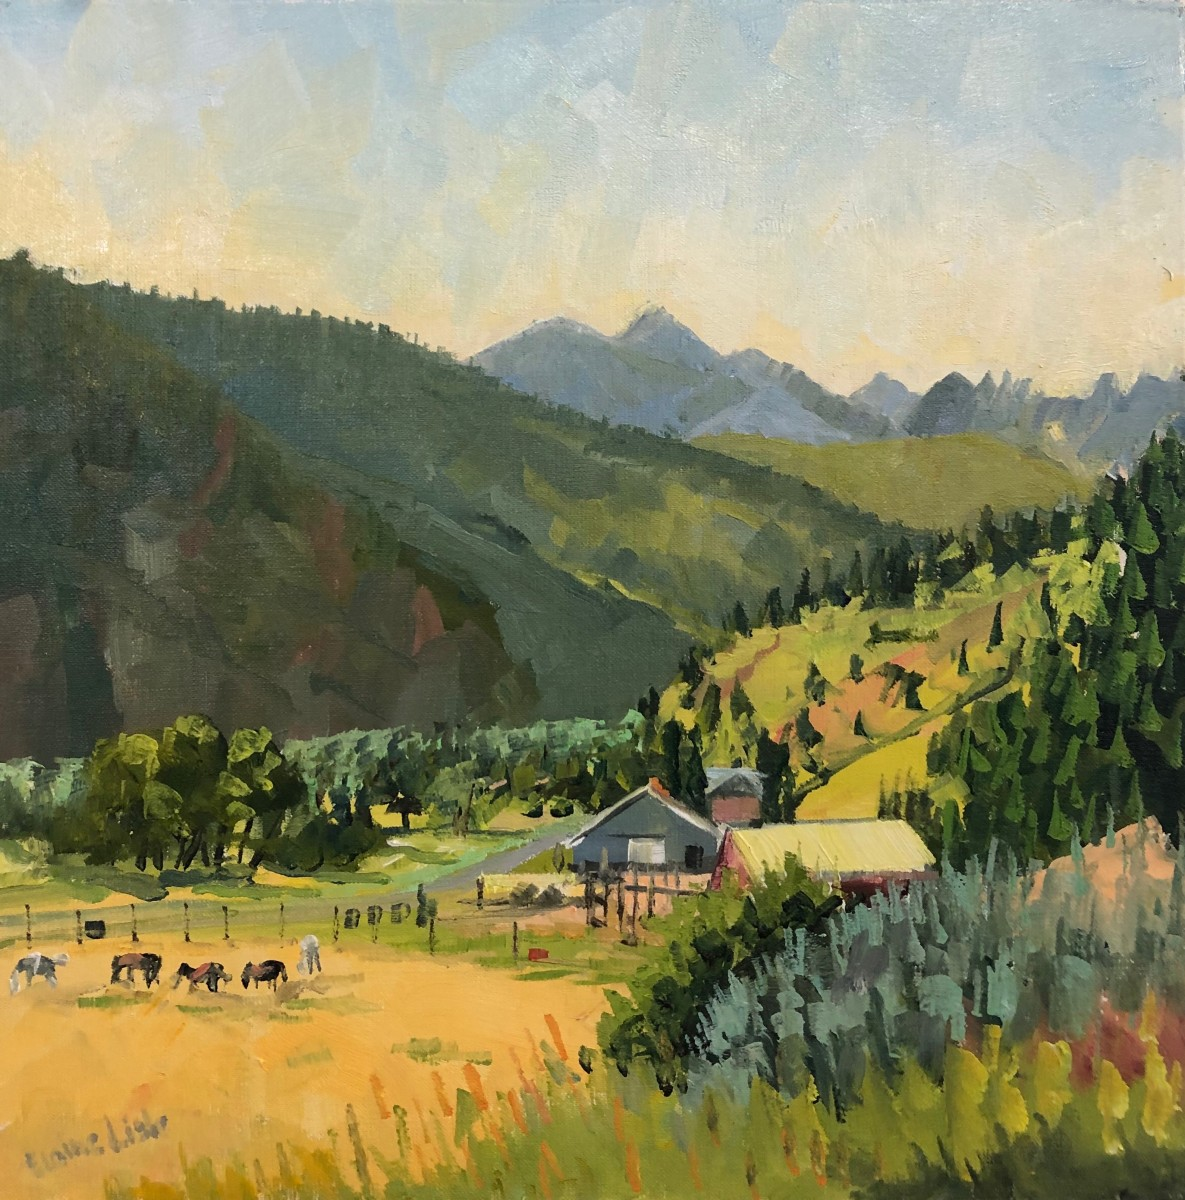 Morning View, WineGlass Ranch by Elaine Lisle